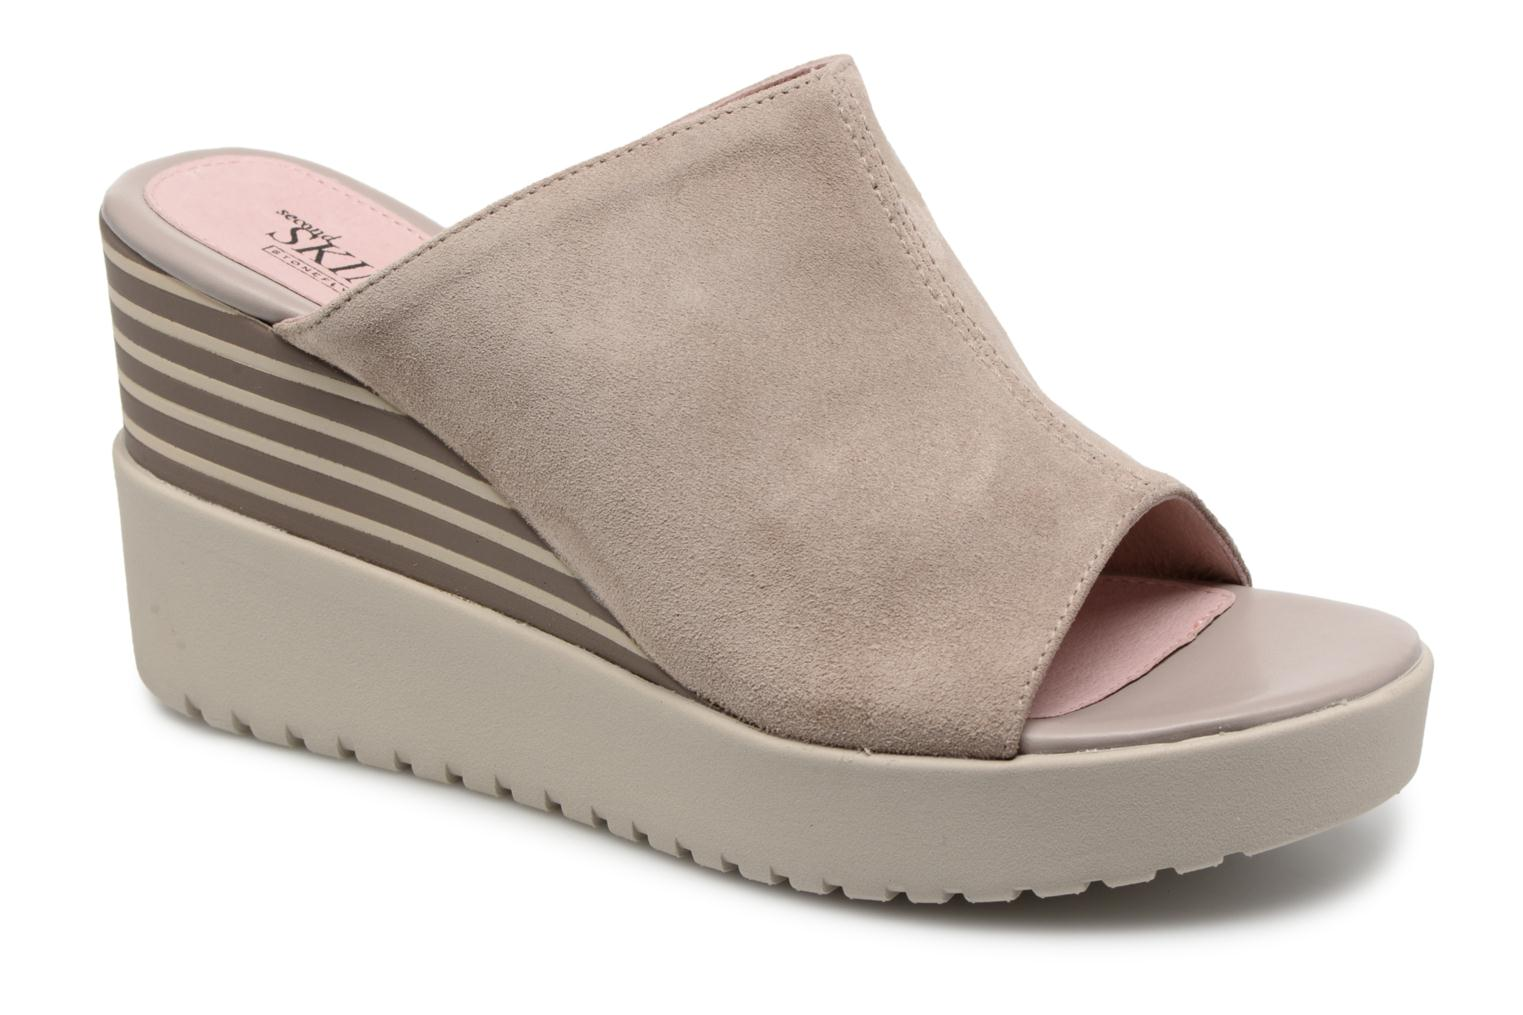 Marques Chaussure femme Stonefly femme Ely 4 Taupe Brown